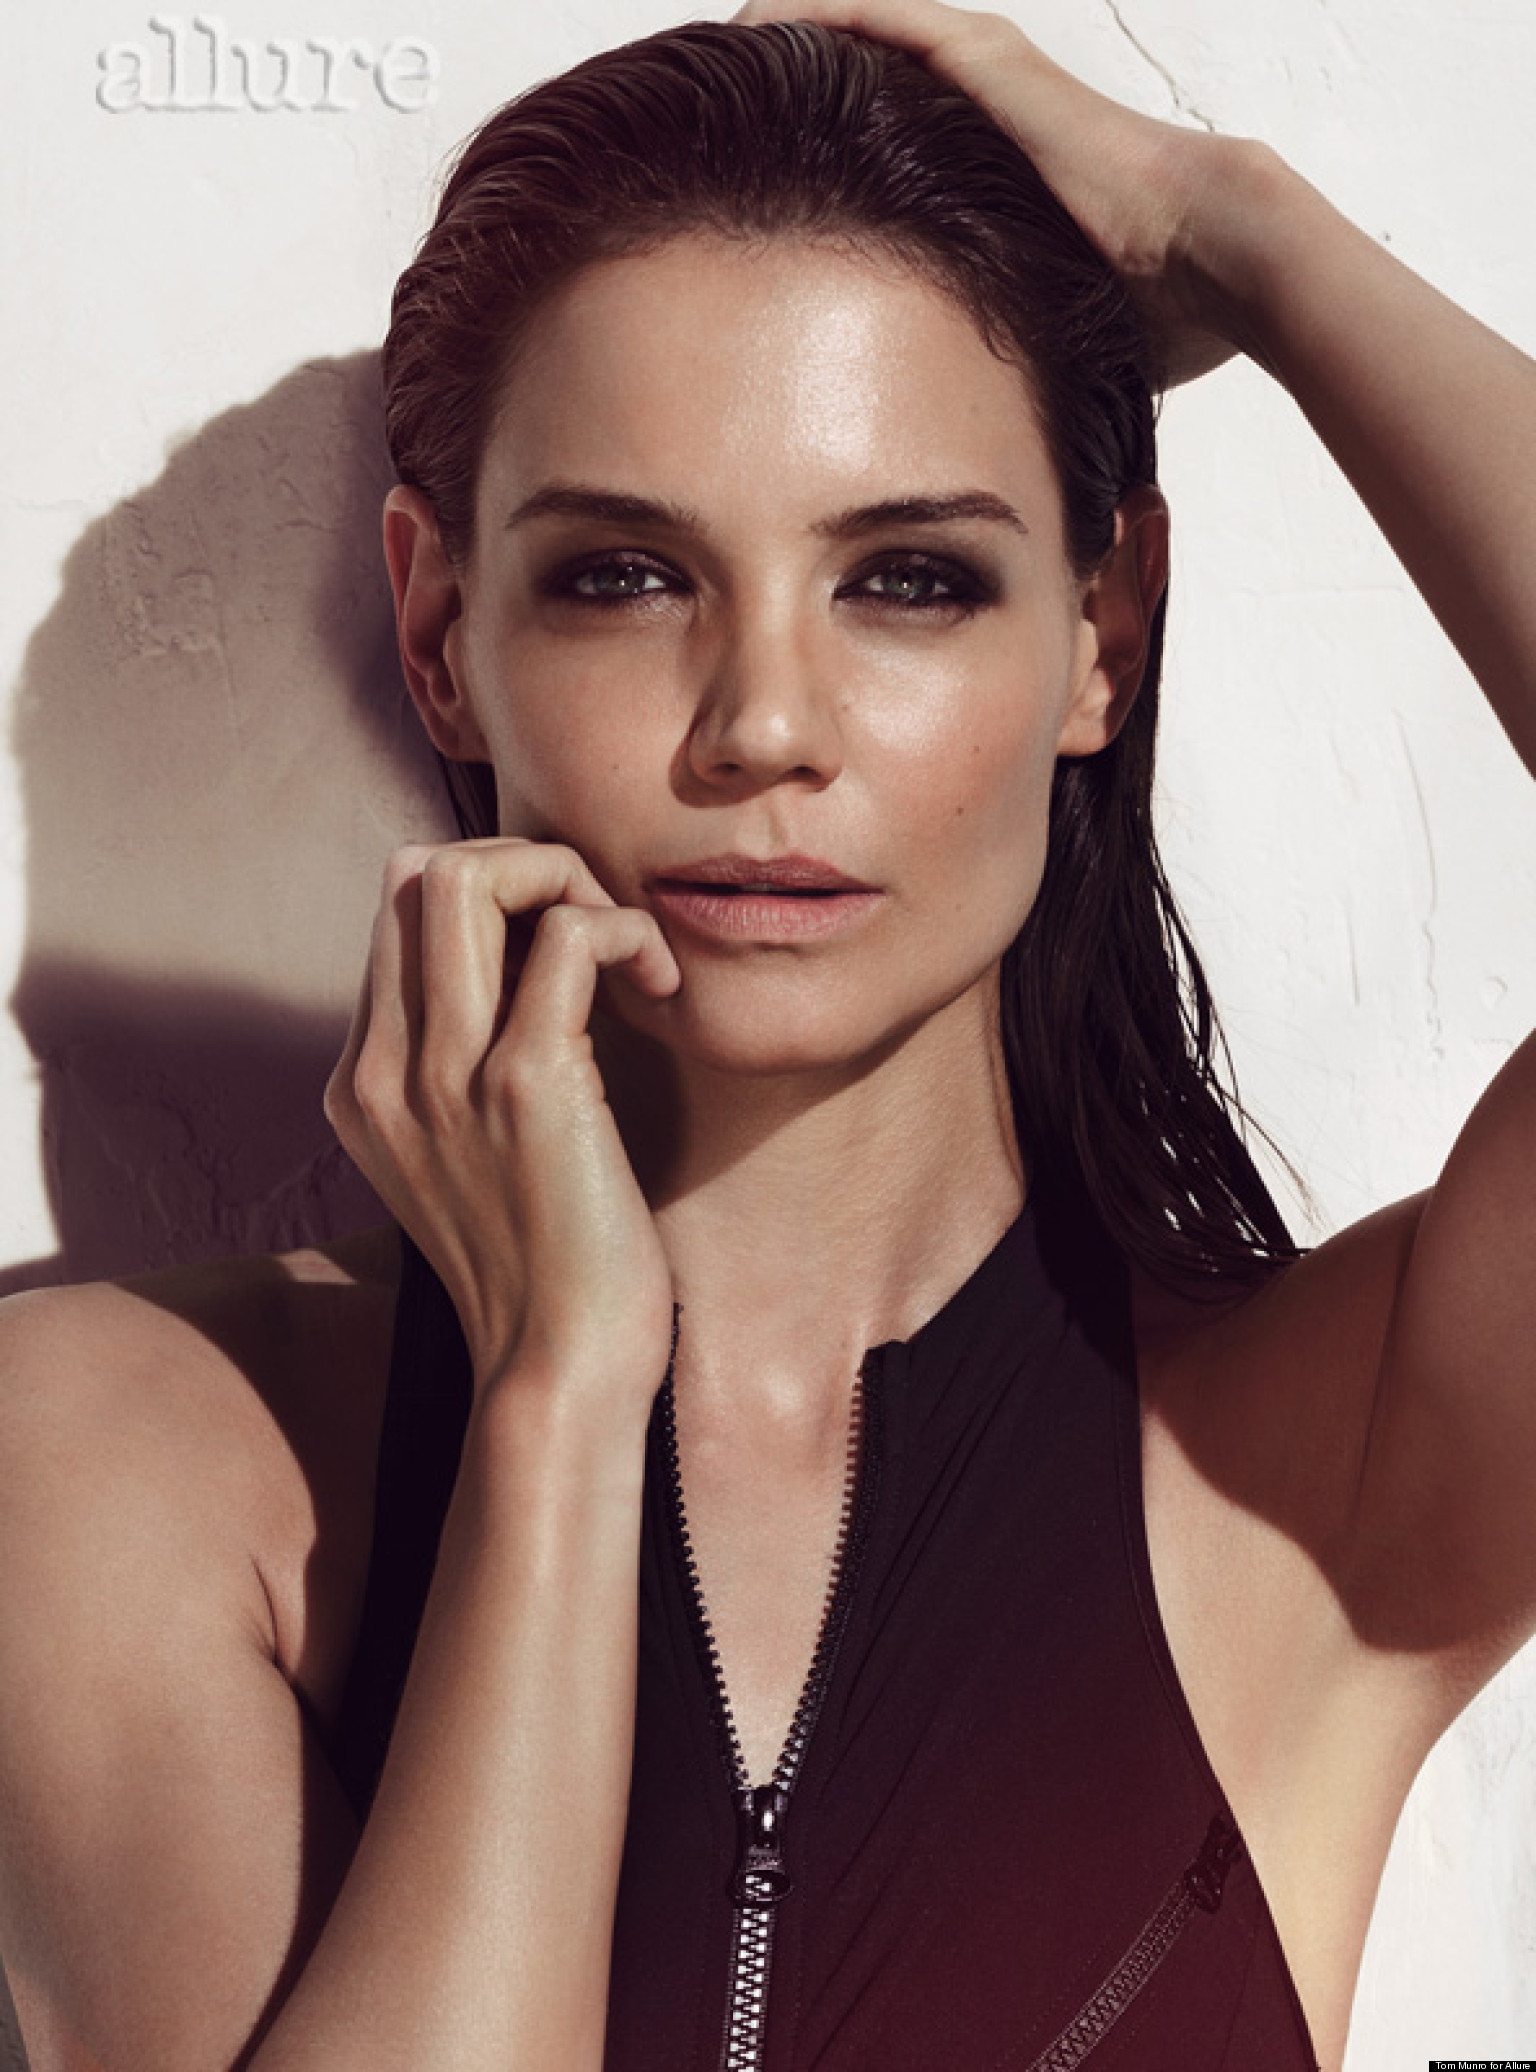 Katie Holmes Hot On Allure Cover, Talks Having More Kids ... Katie Holmes Attorney